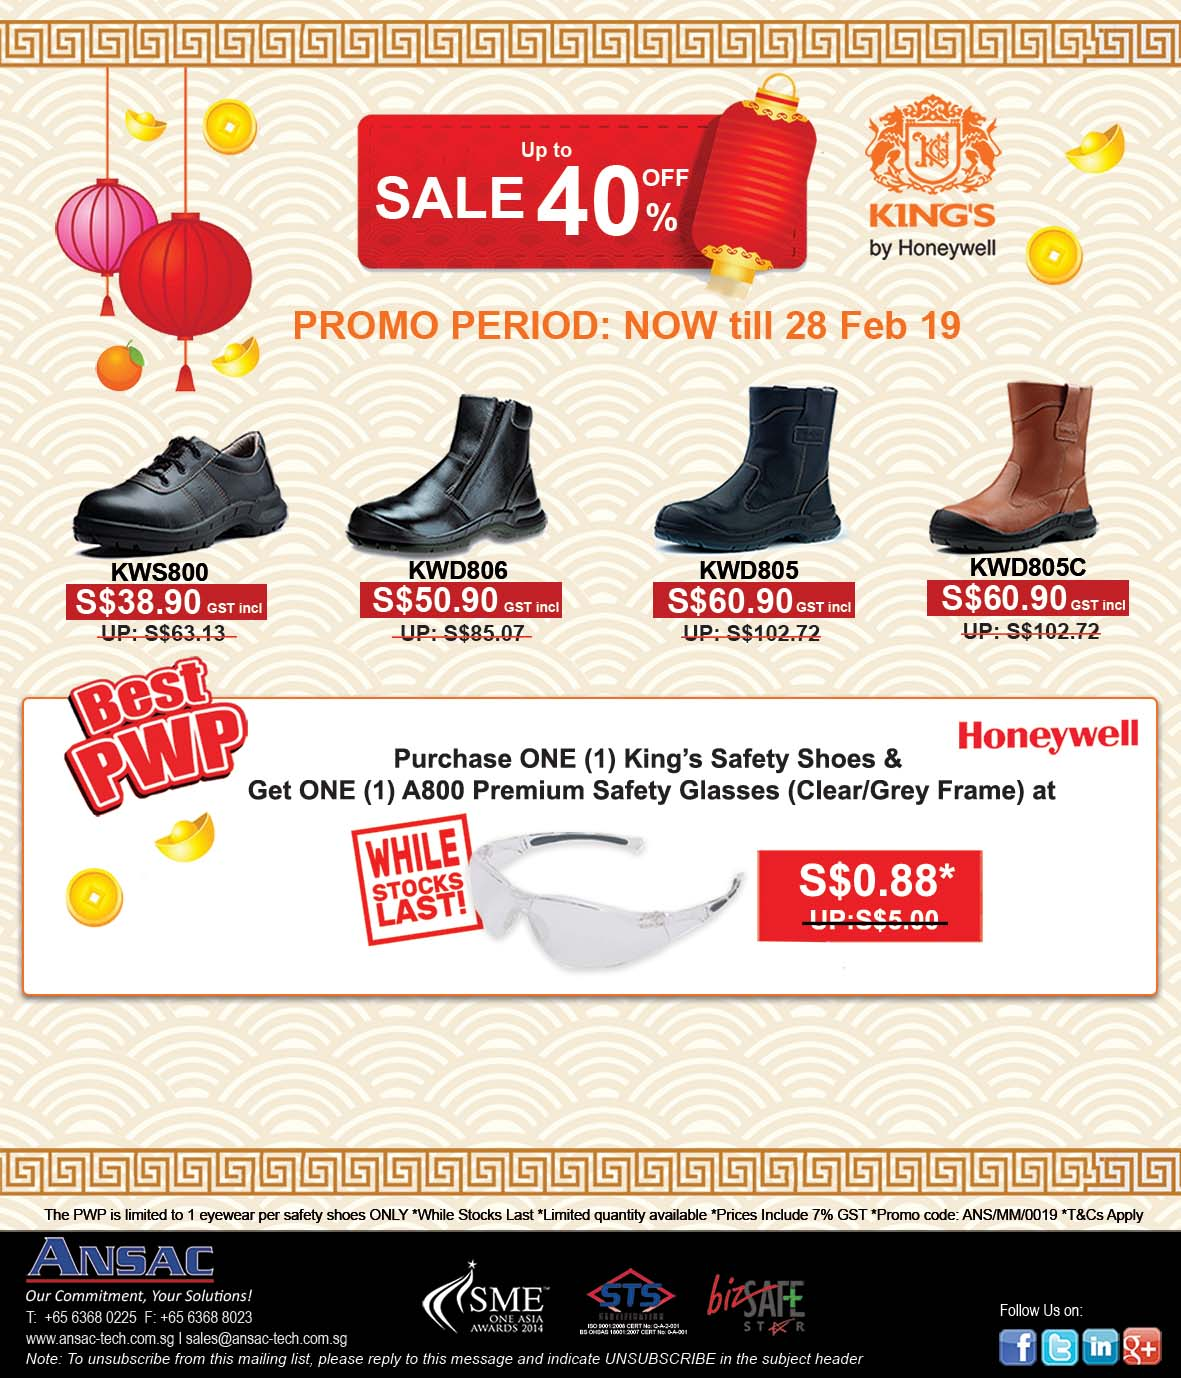 CNY Sale 2019! Up to 40%Off + PWP-King's Safety Shoes & Honeywell Safety Eyewear Up for Grabs Now!